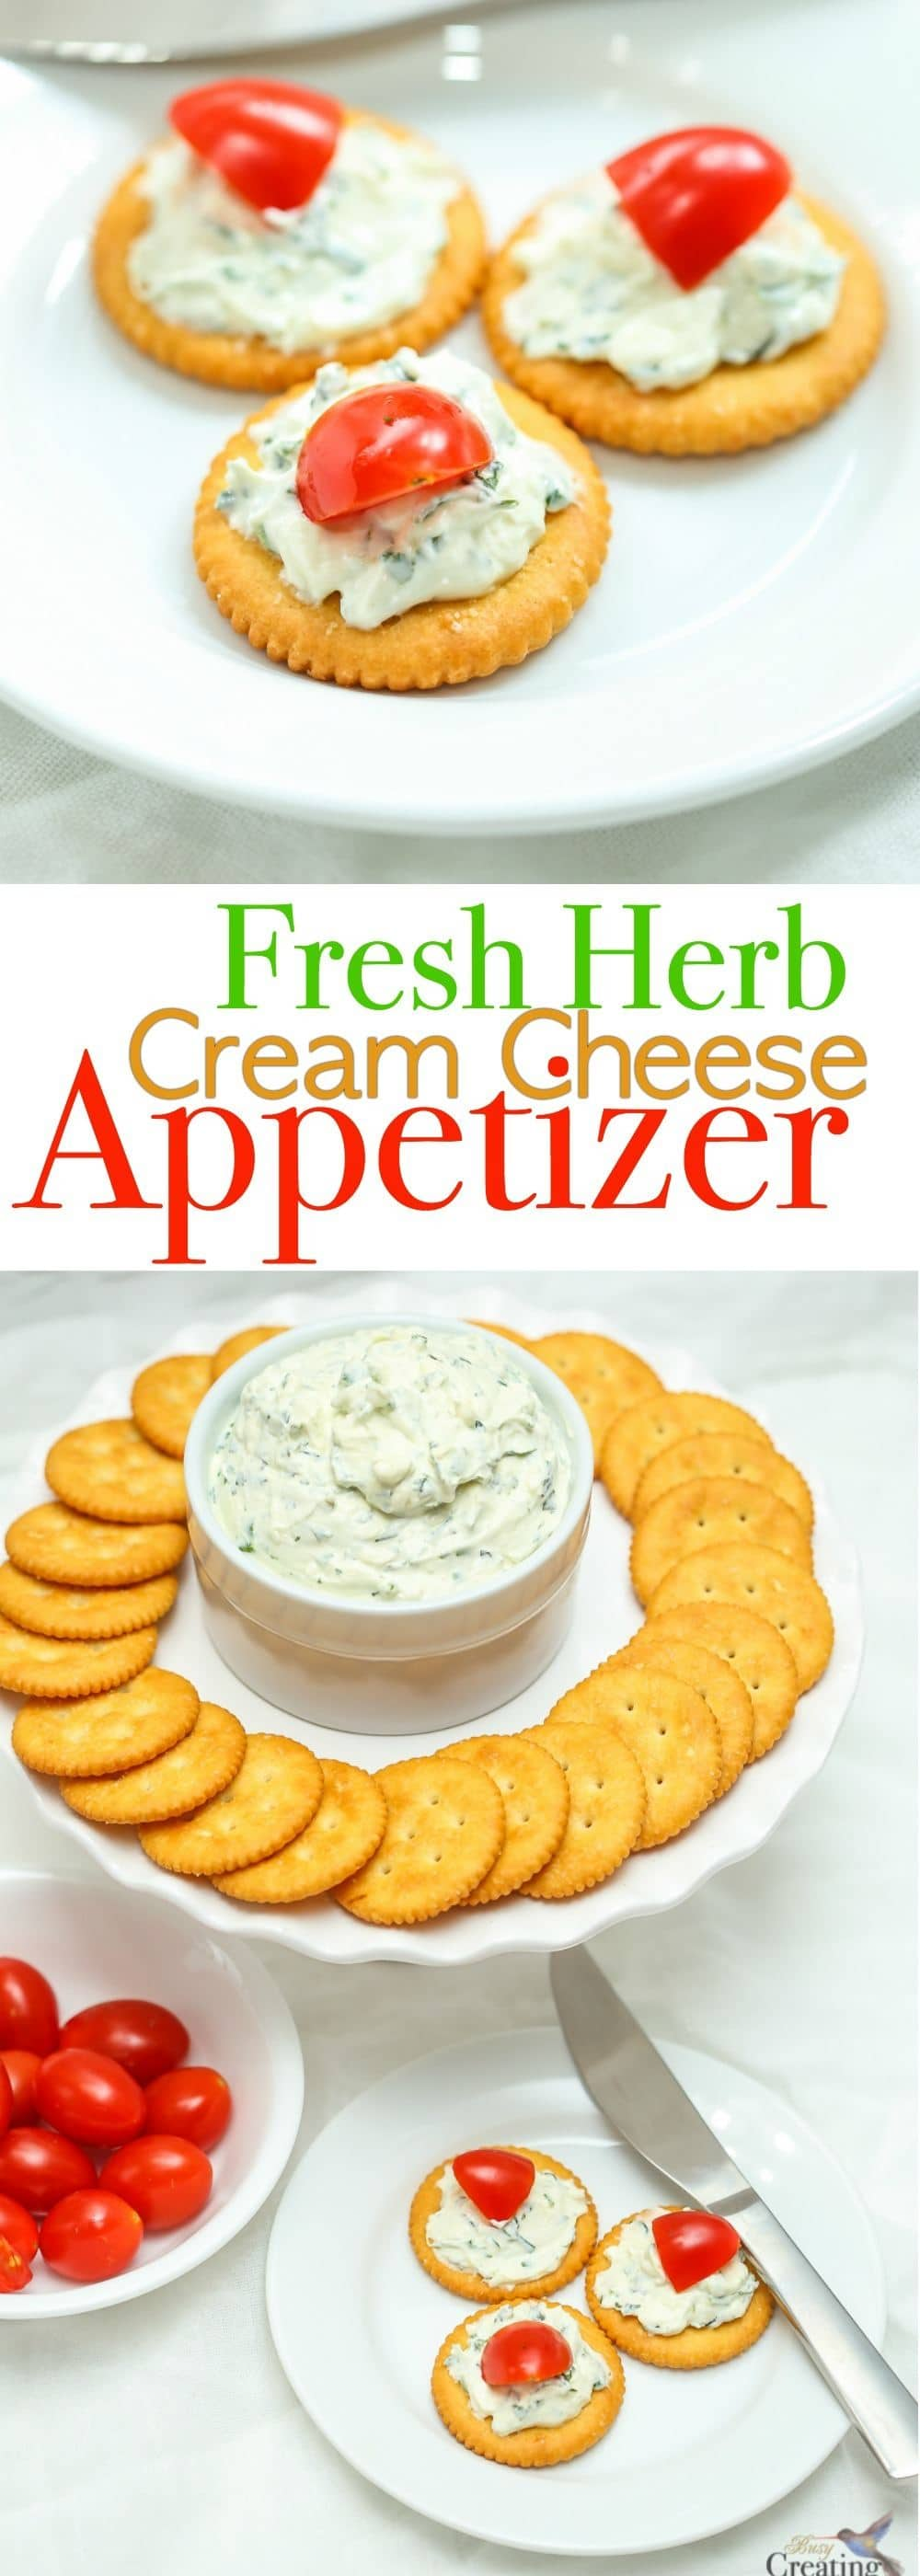 Discover easy entertaining with a simple DIY Herb Cream Cheese Spread recipe made with fresh herbs to spread on appetizers that your guests will love! This homemade spread is delicious on crackers, bread, vegetables or bagels. And can even be used as a chip dip!